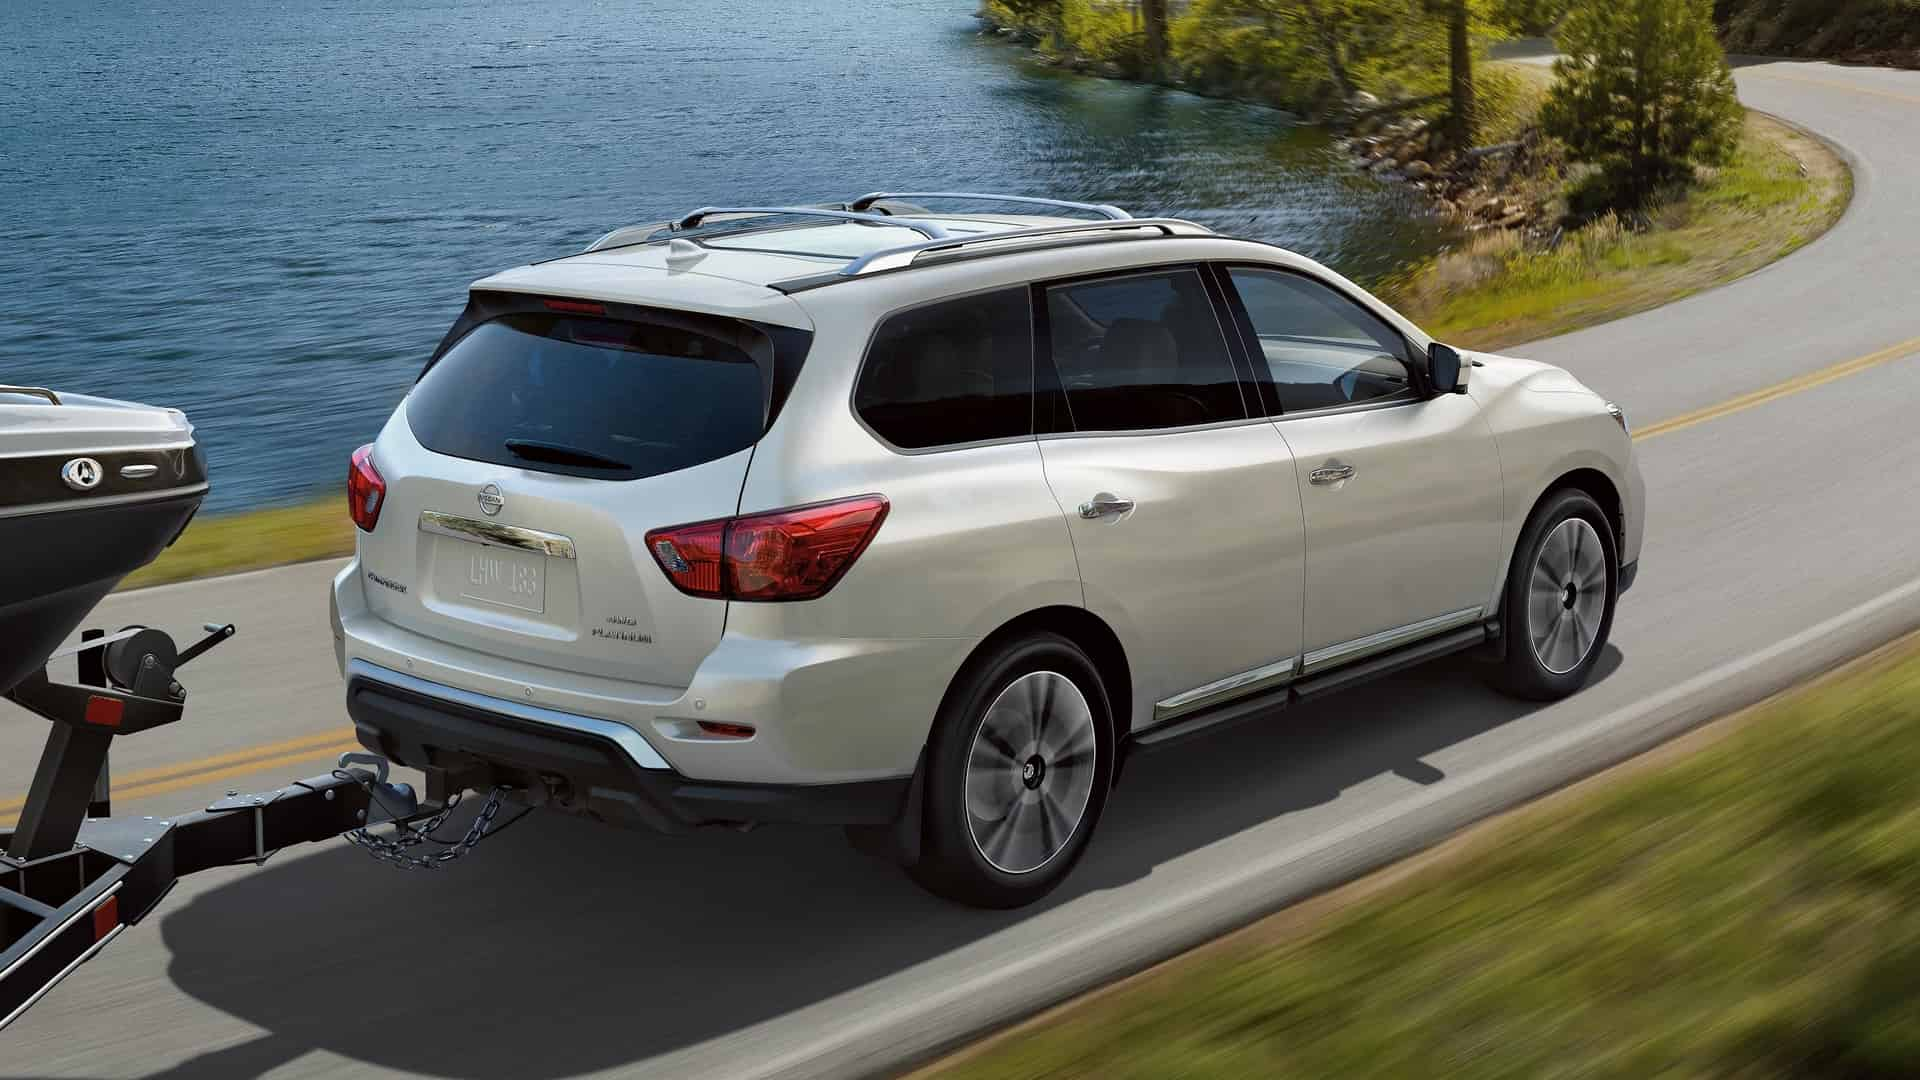 Learn about the 2020 Nissan Pathfinder near DeLand FL